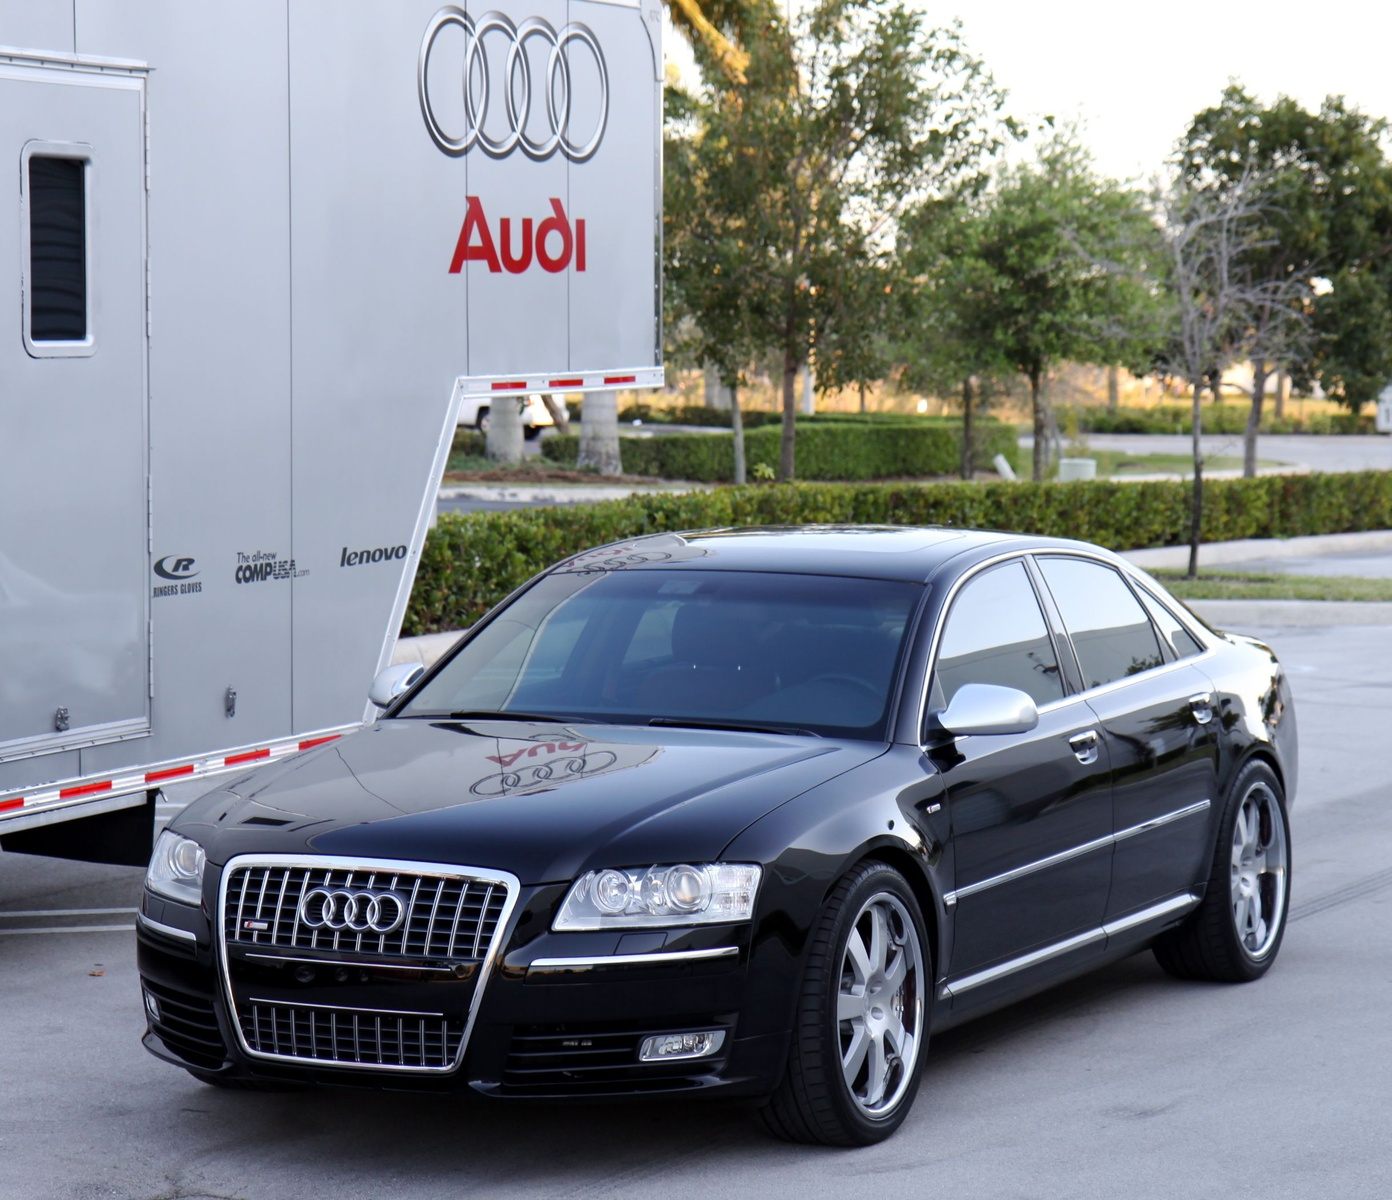 2006 Audi A8 Photos, Informations, Articles